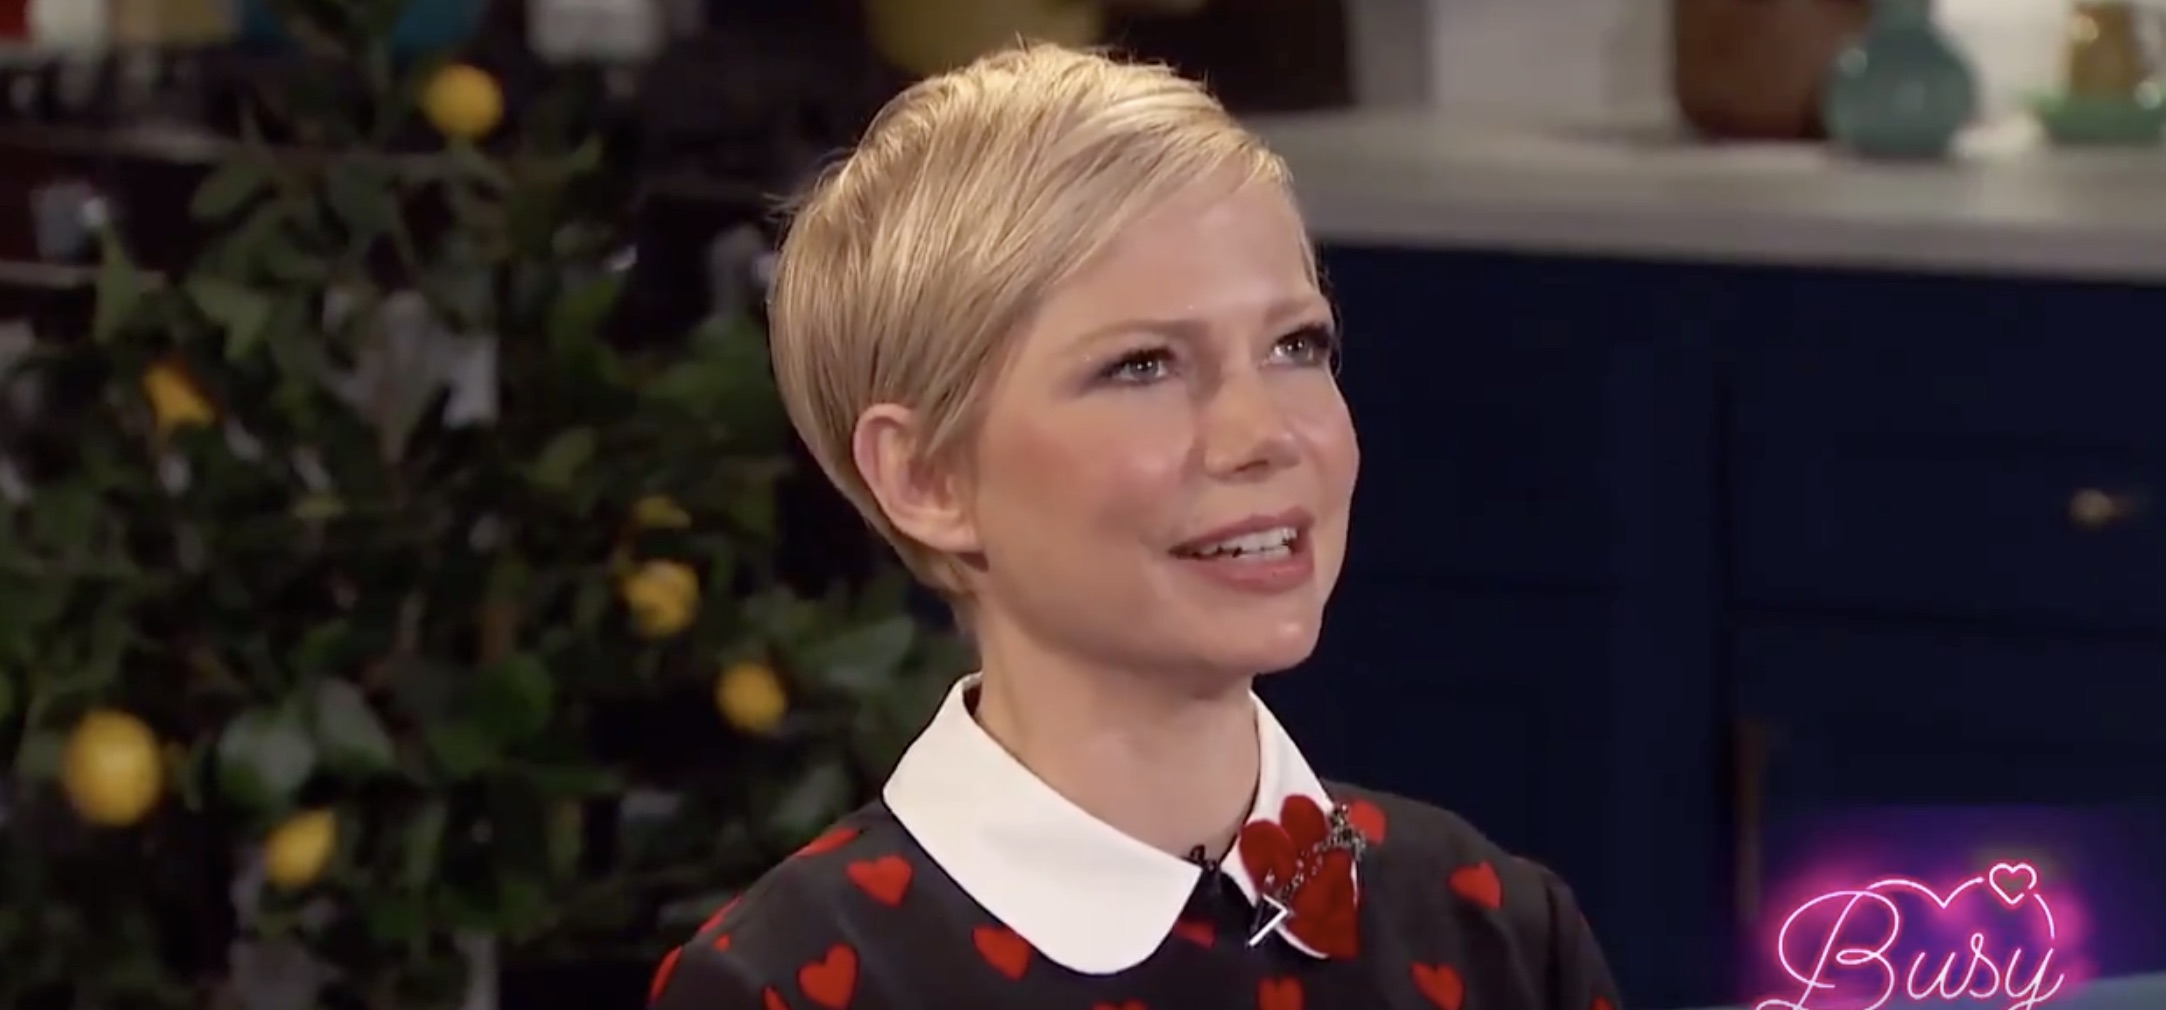 Michelle Williams once got locked out of a hotel room in only her underwear—handled it like a champ